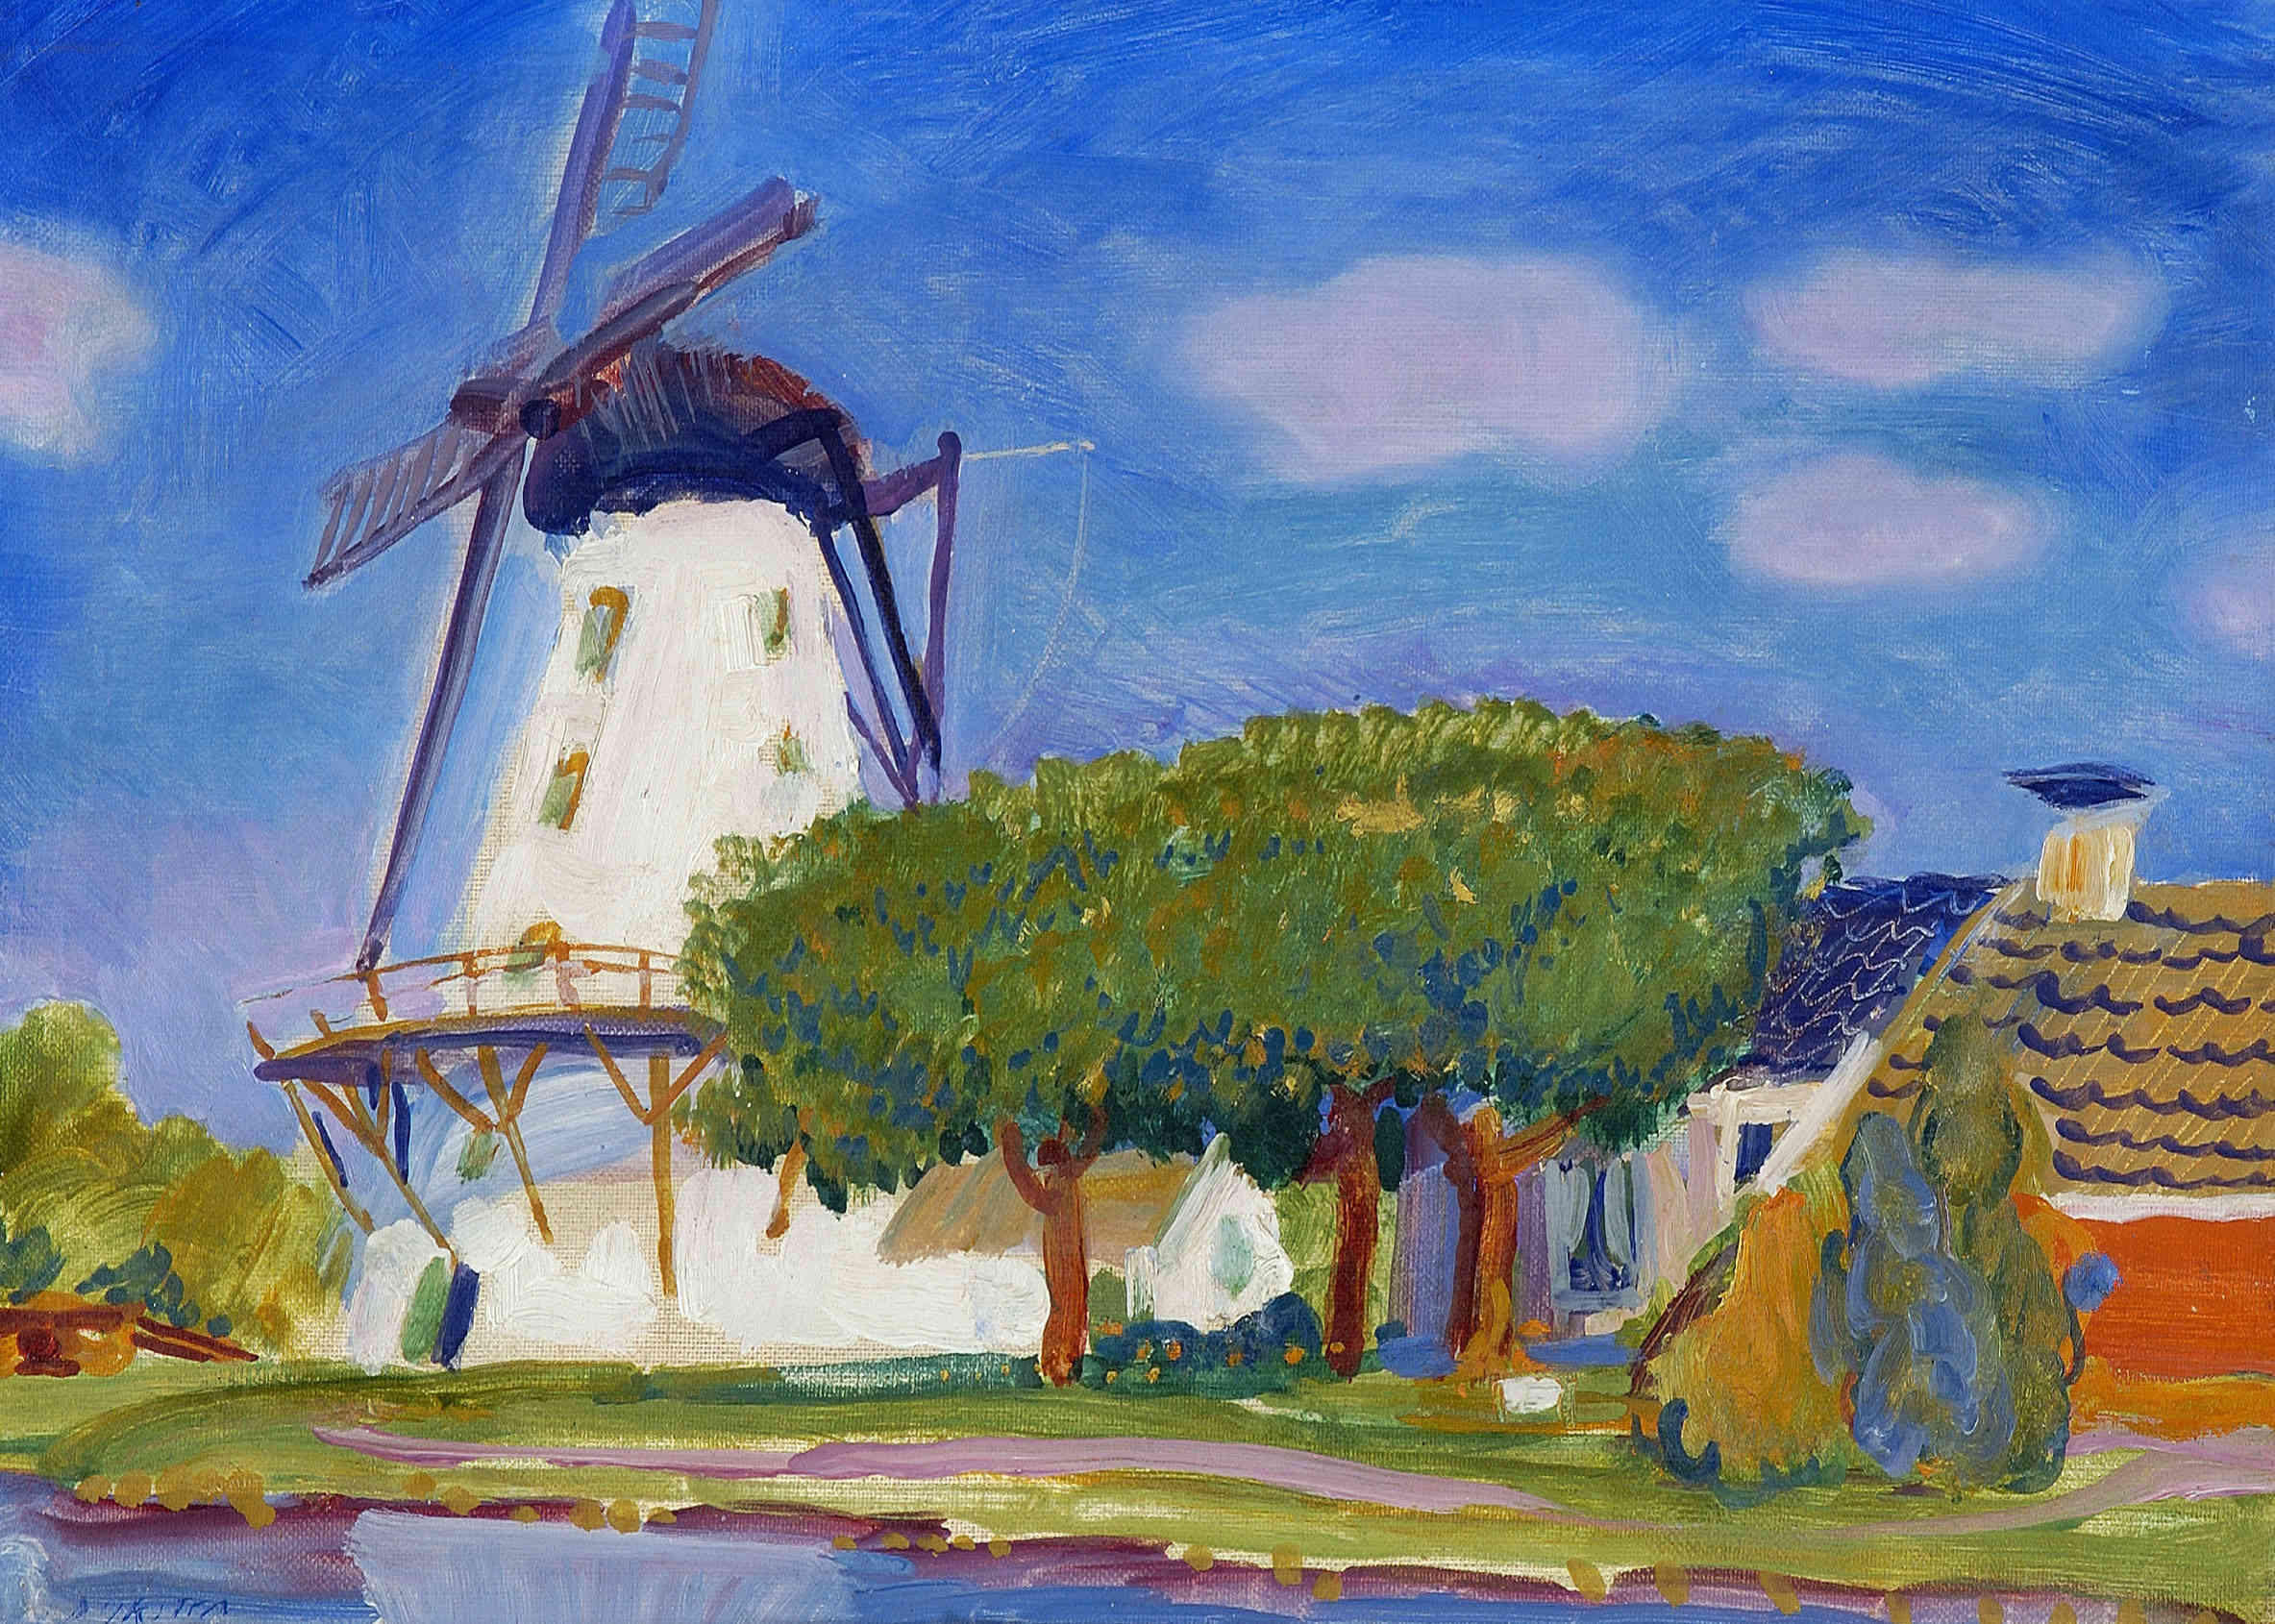 De witte molen in Ten Boer, ca. 1930